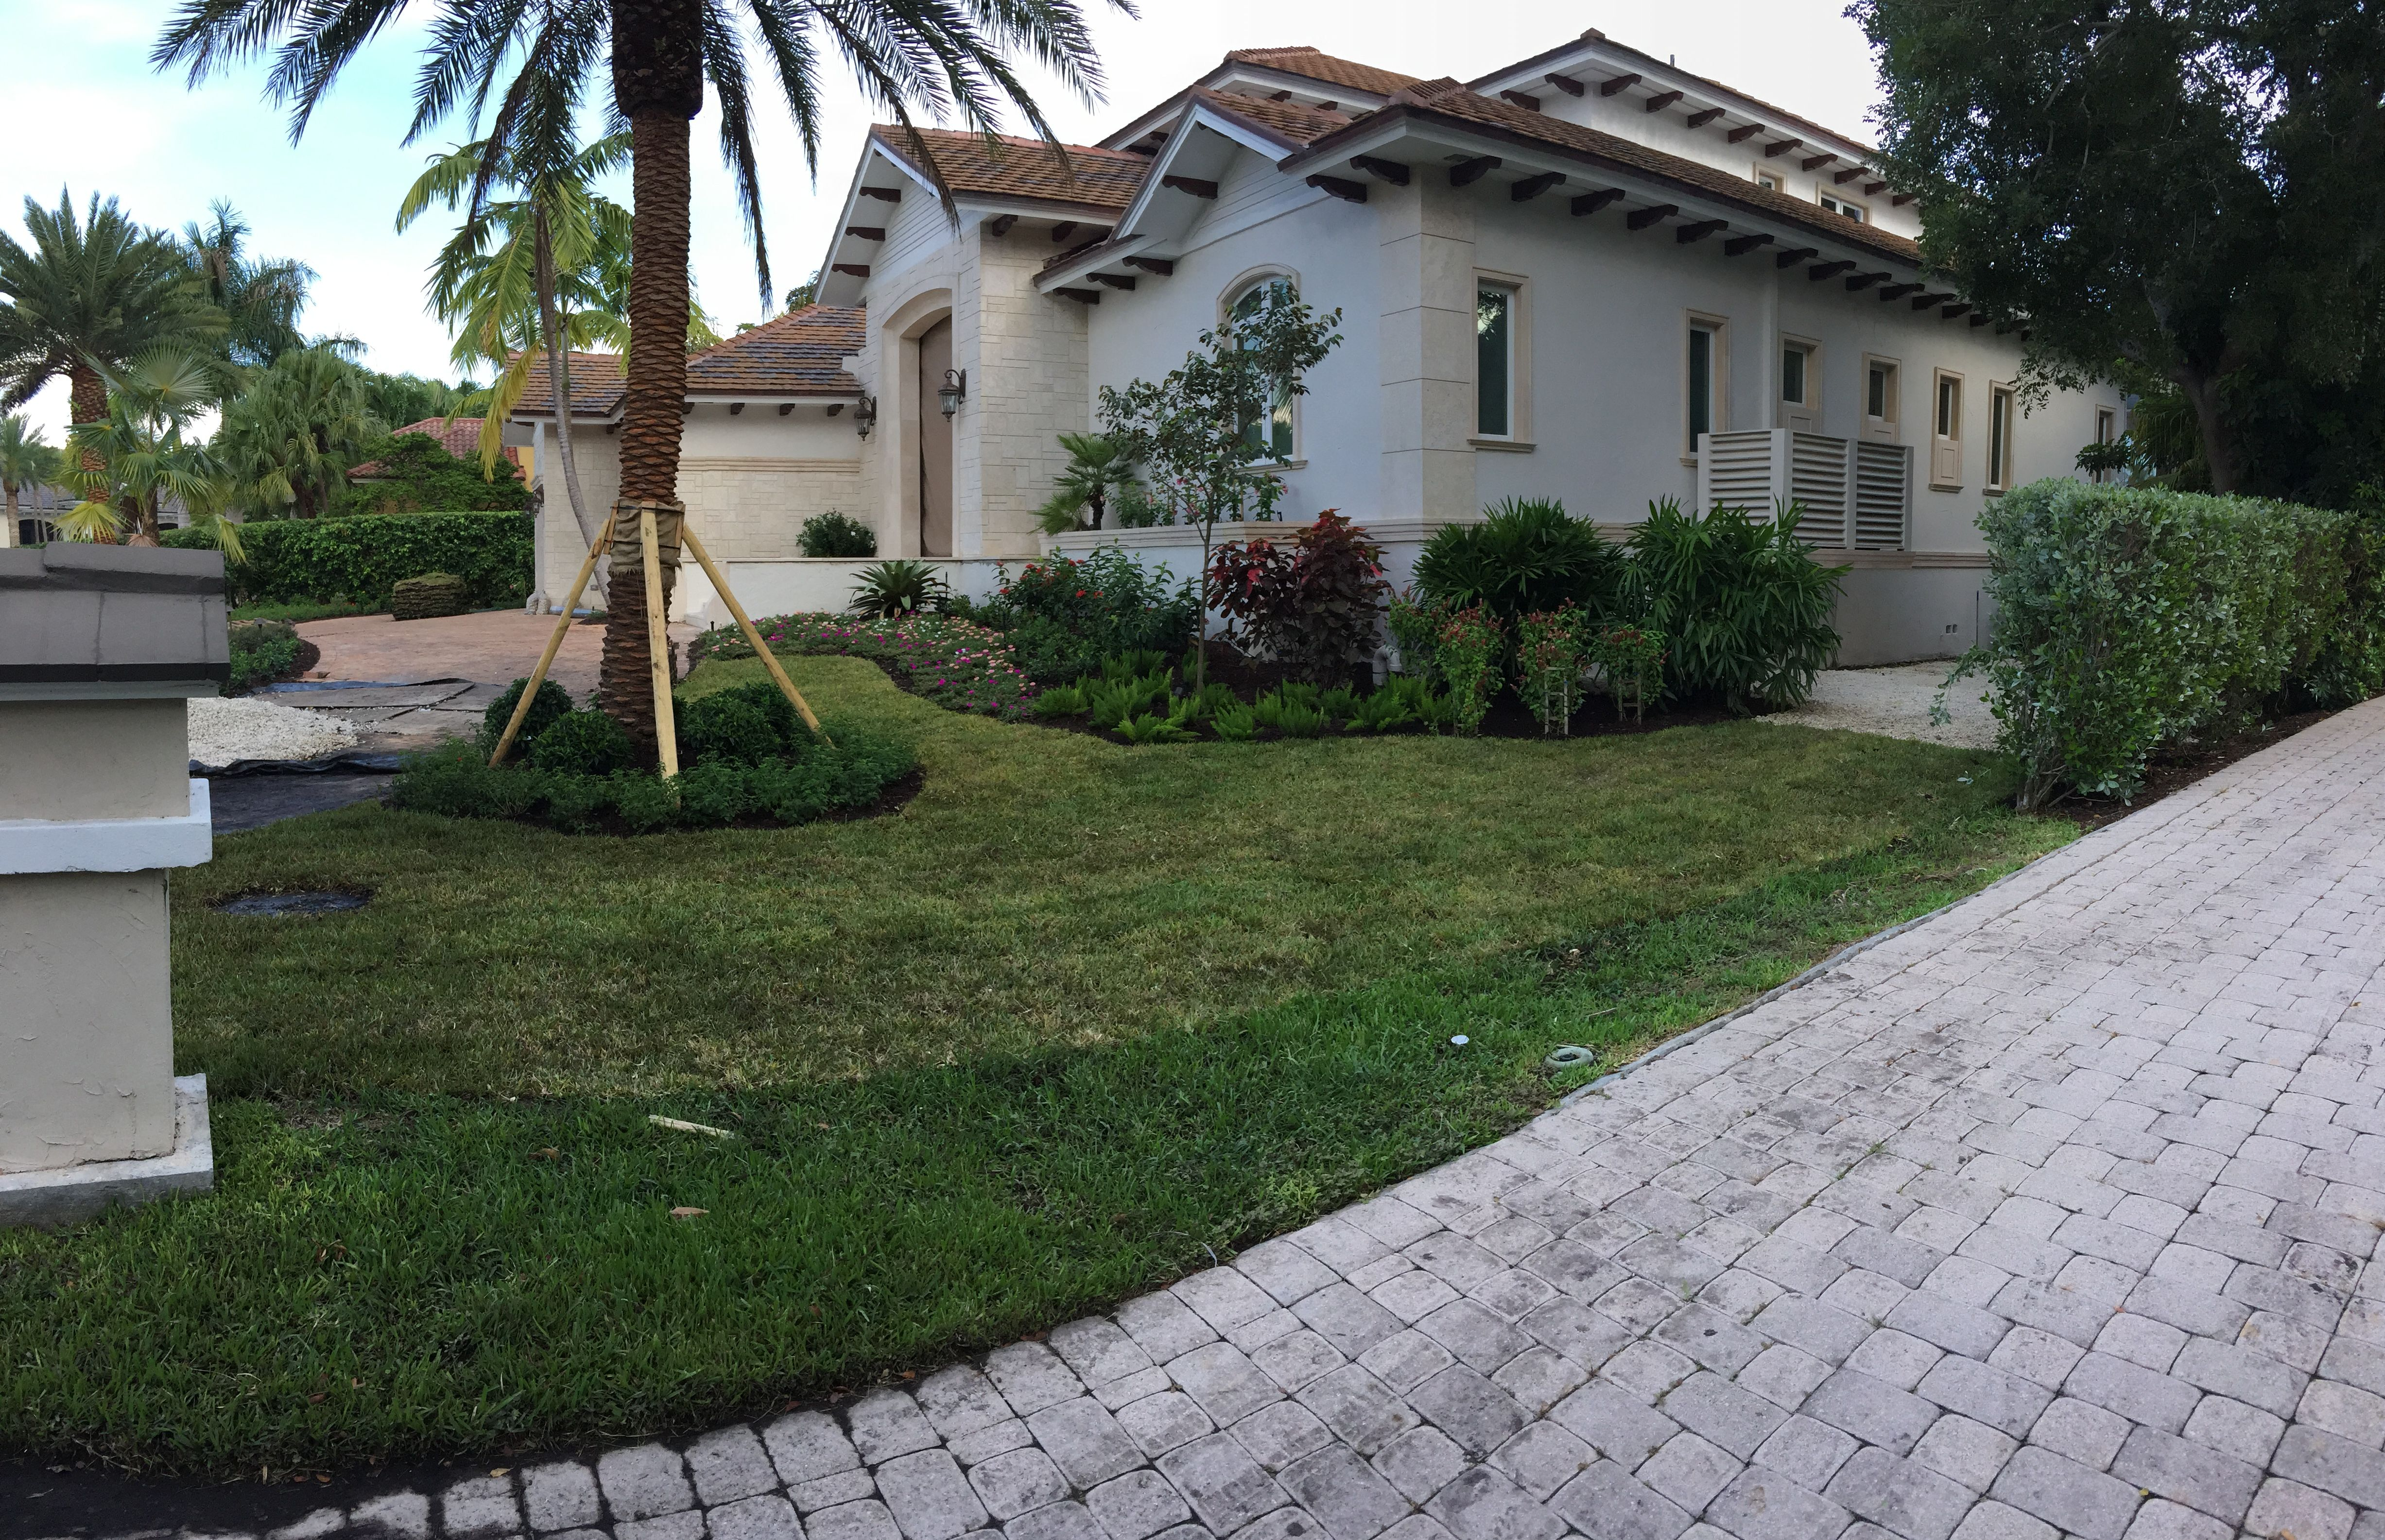 Landscaping Services in Hialeah, Florida TurfTim